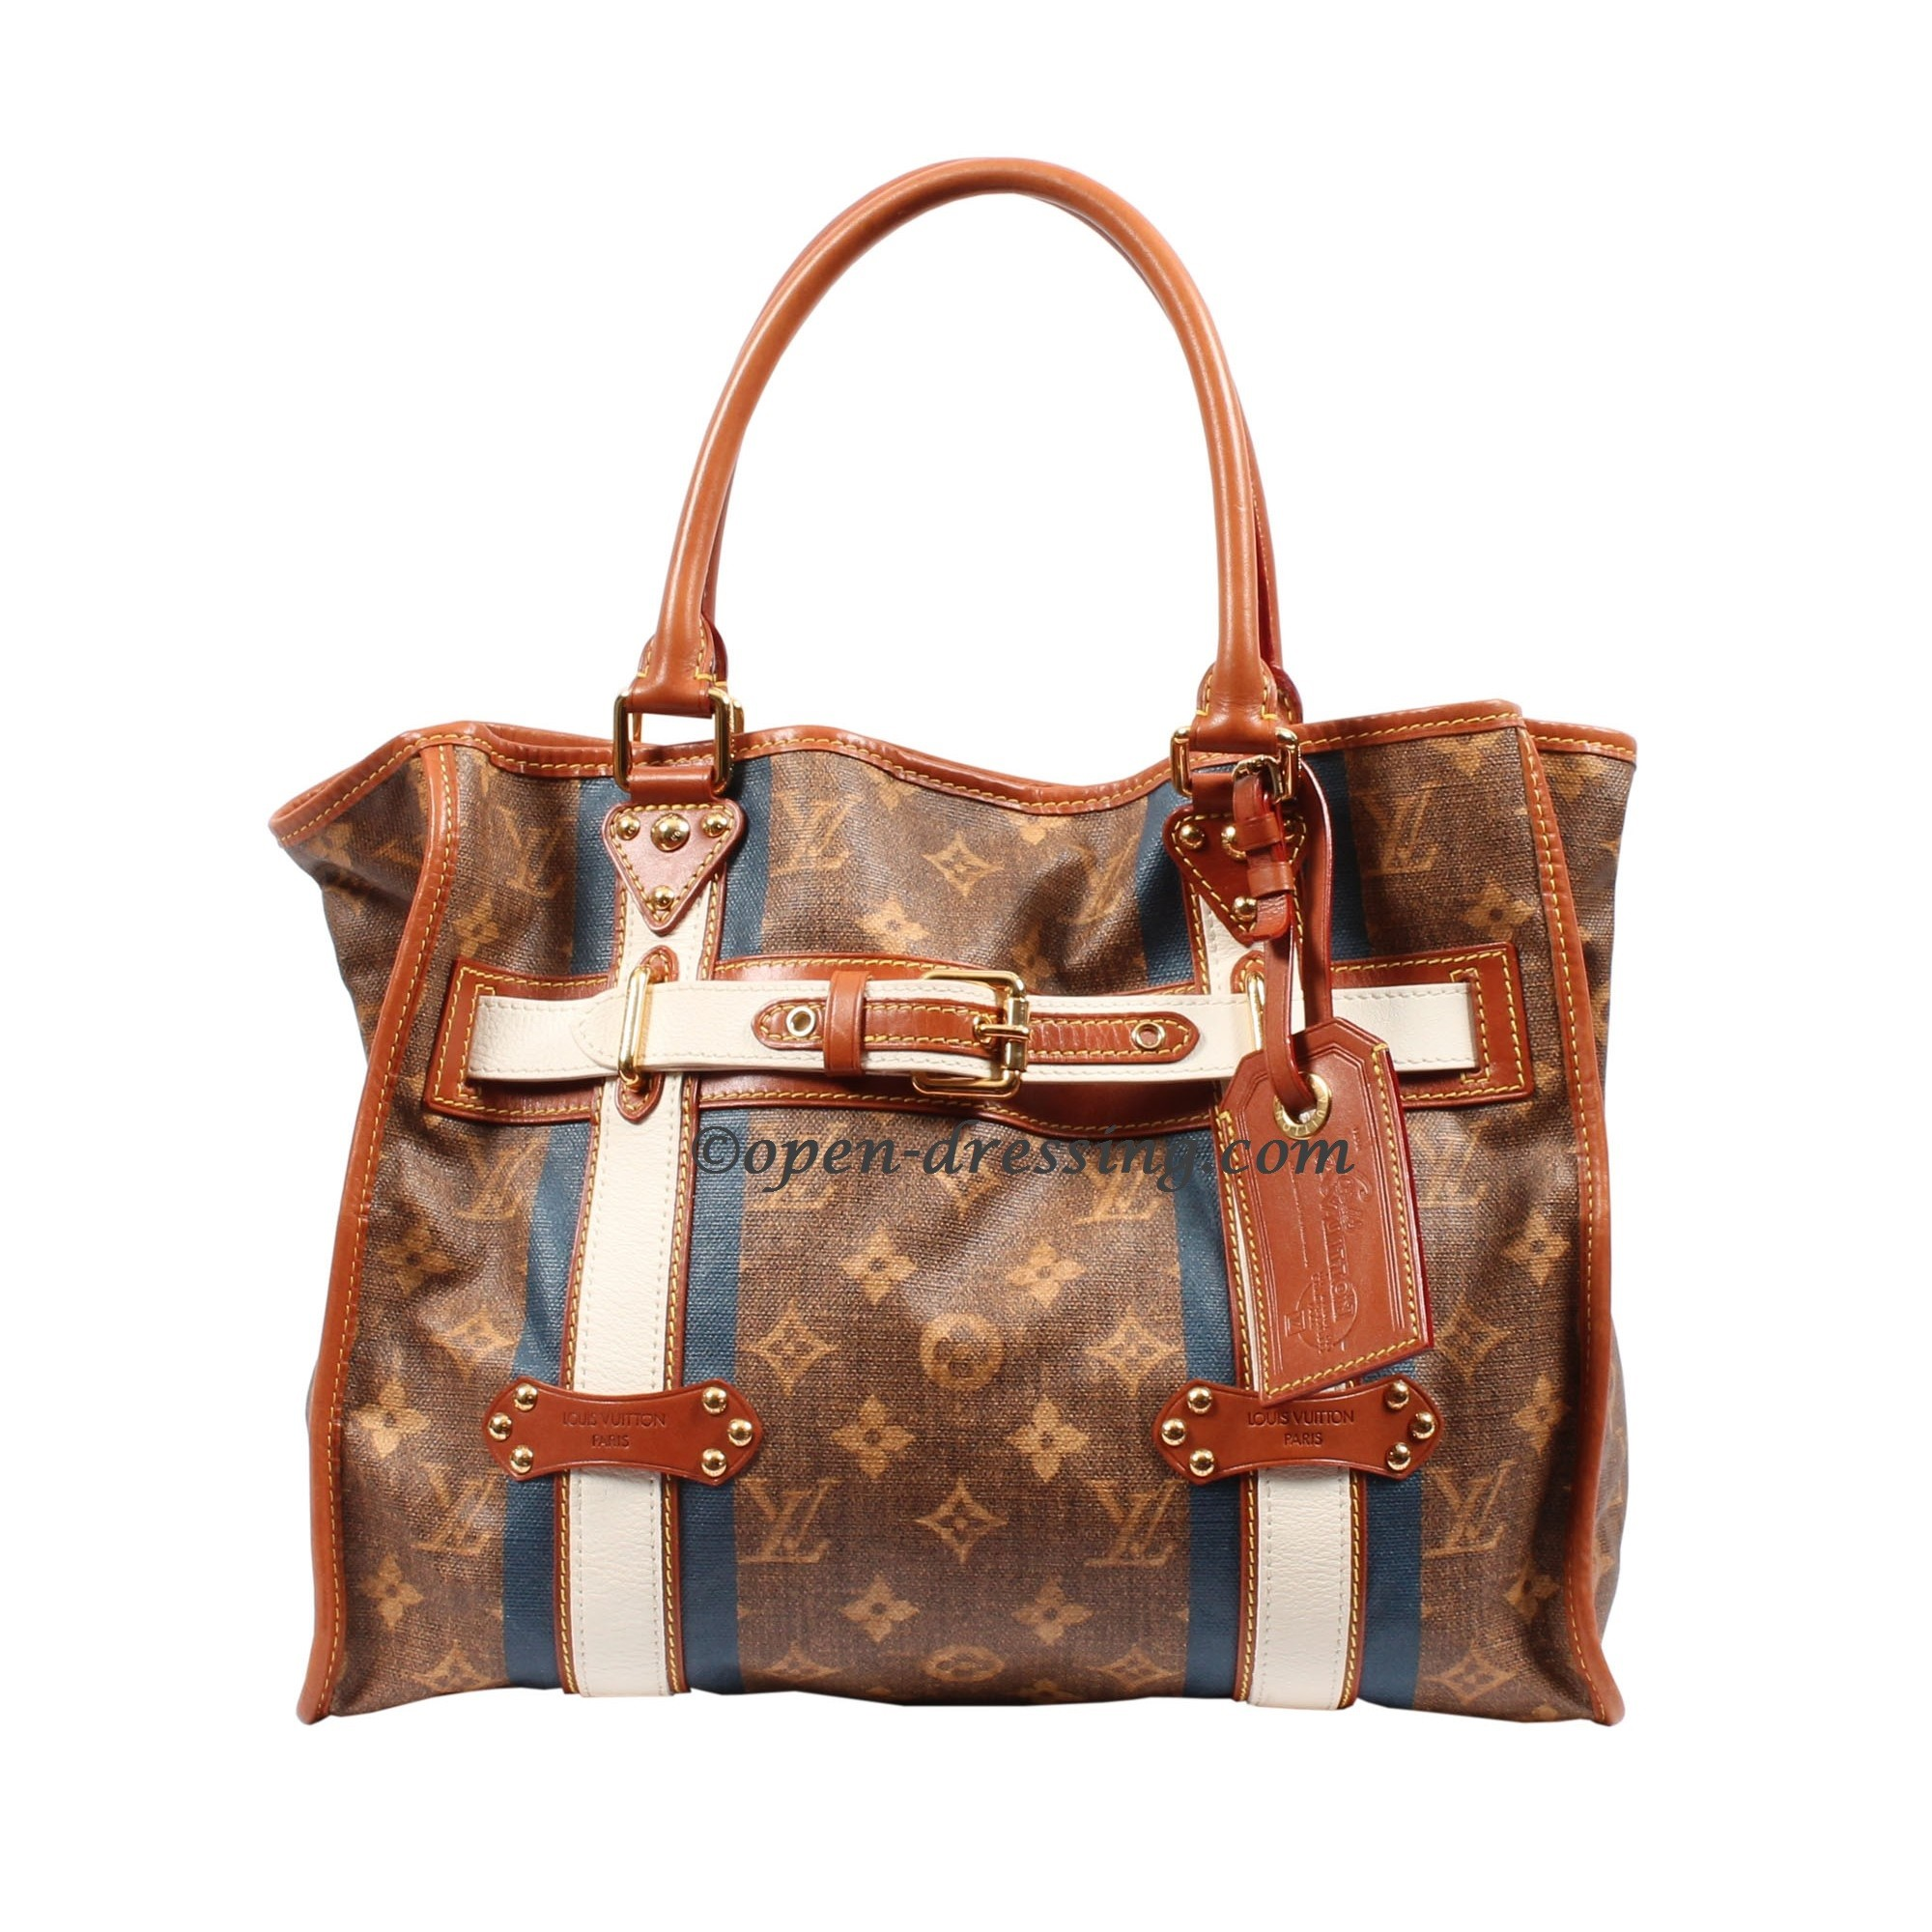 d3d5799d7247 Sac de voyage Louis Vuitton Rayures GM fly over the image to zoom